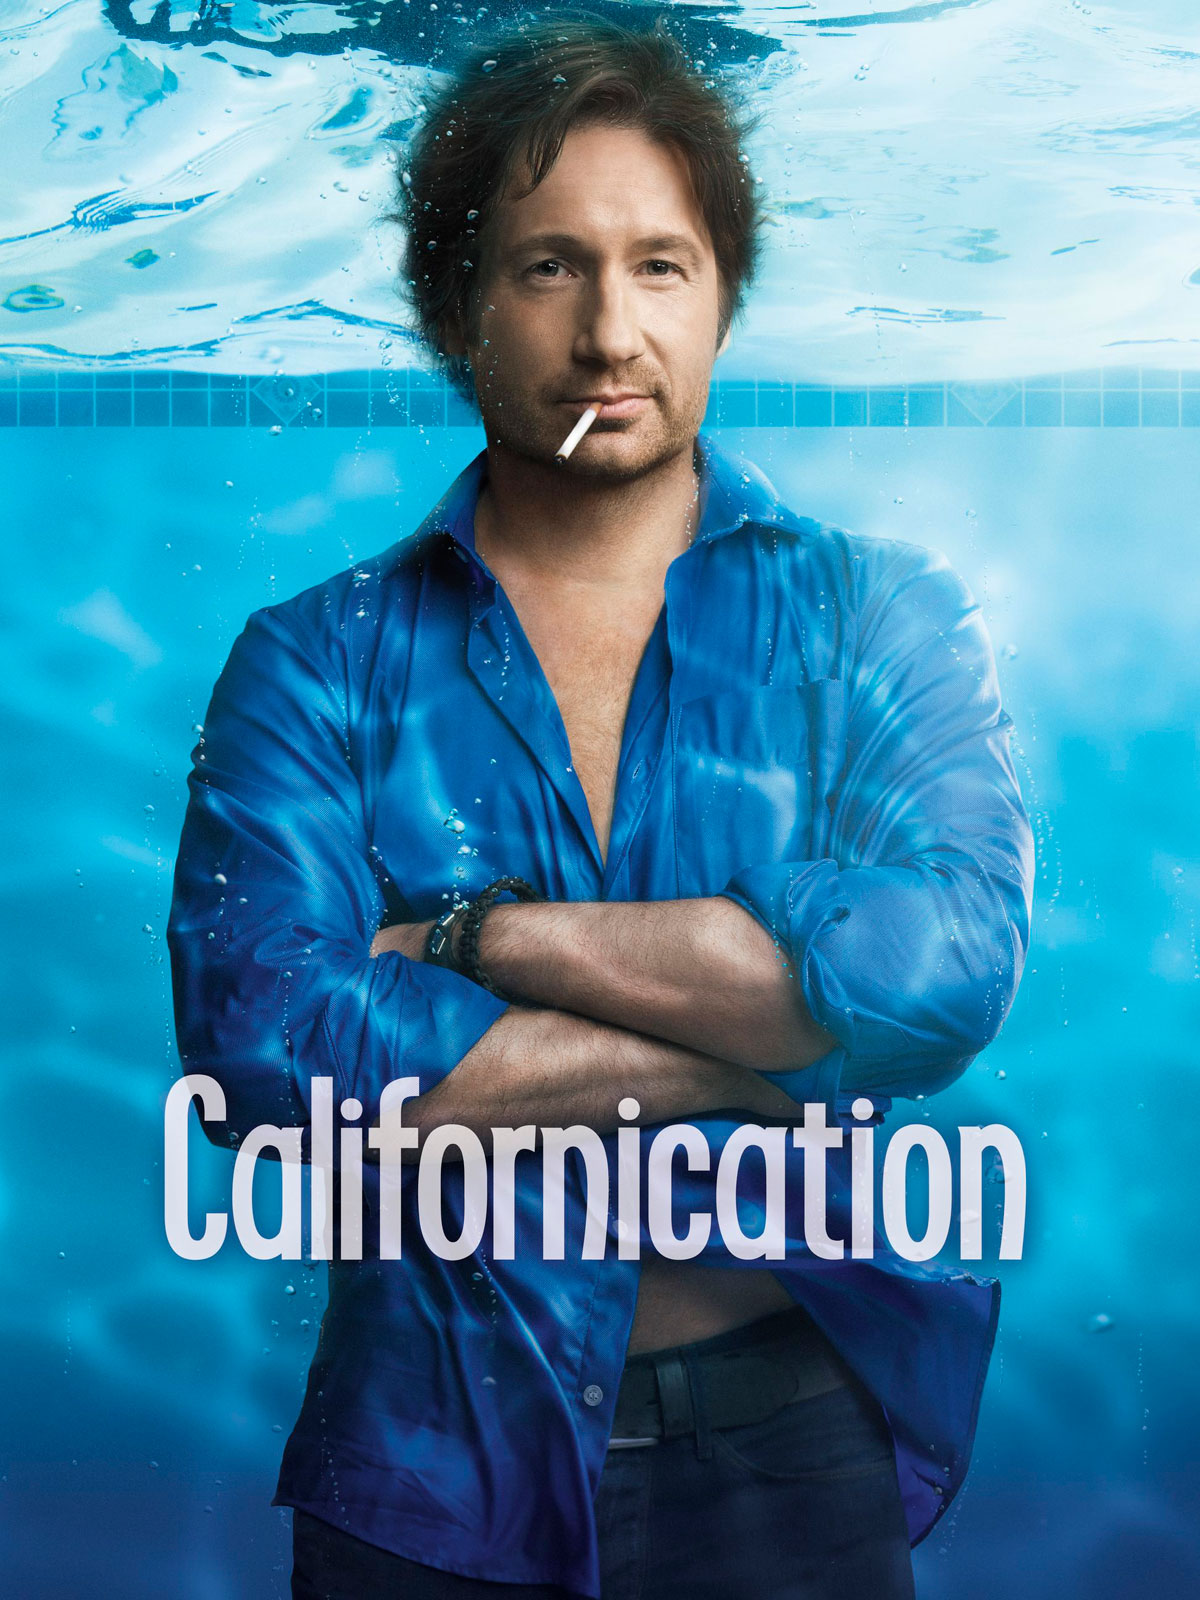 californication bs